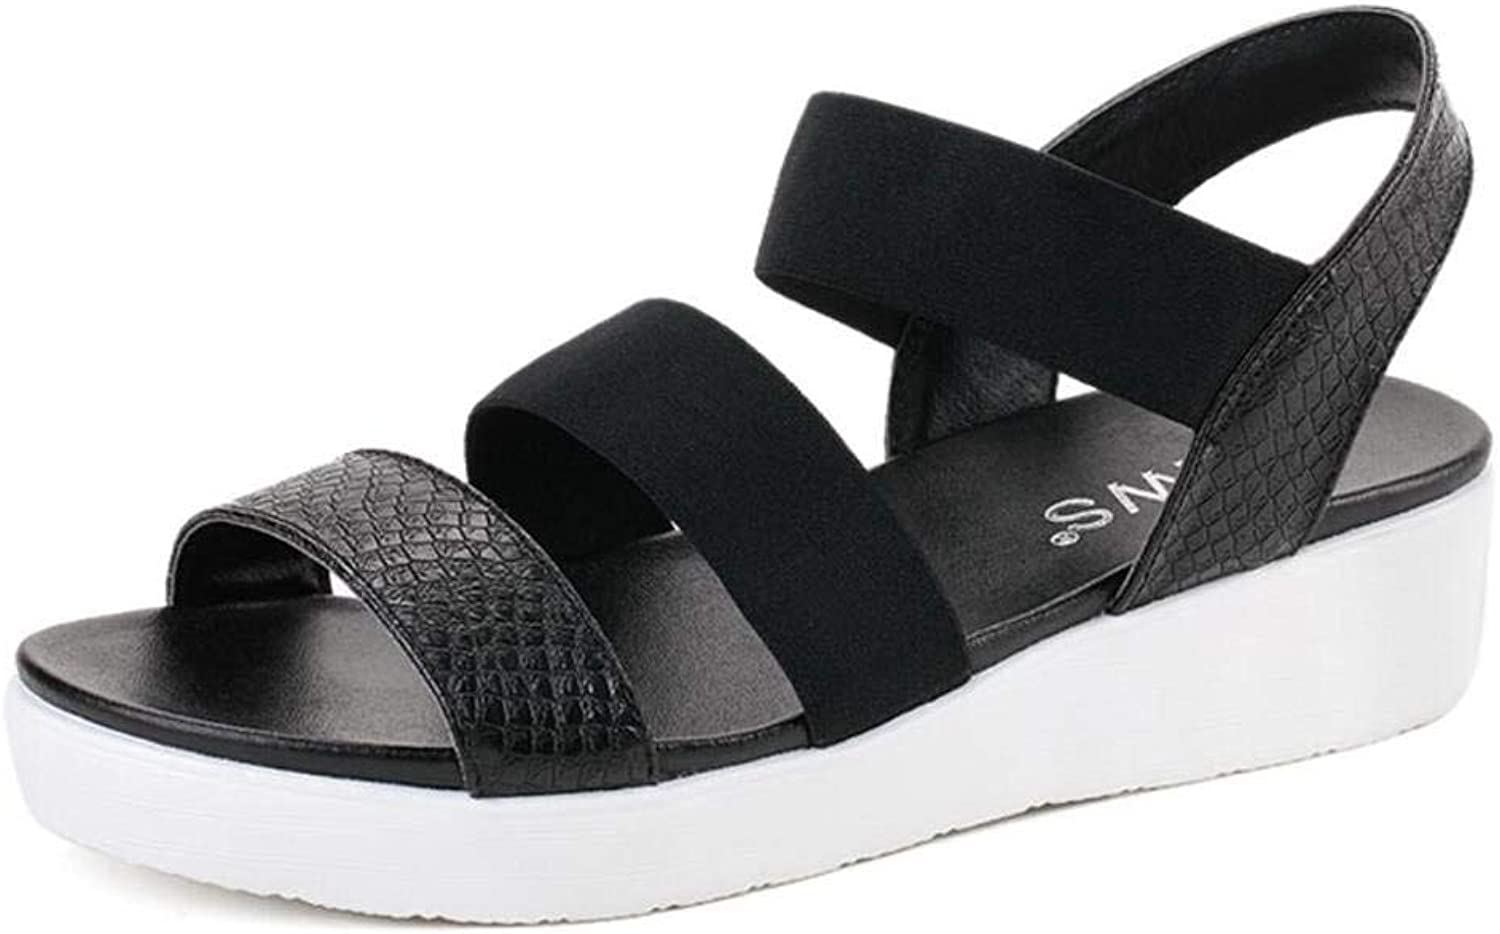 Lady Sandals Womens Summer Flat Sandals Flat with Wild in The Sandals White Casual Quality Super for Women